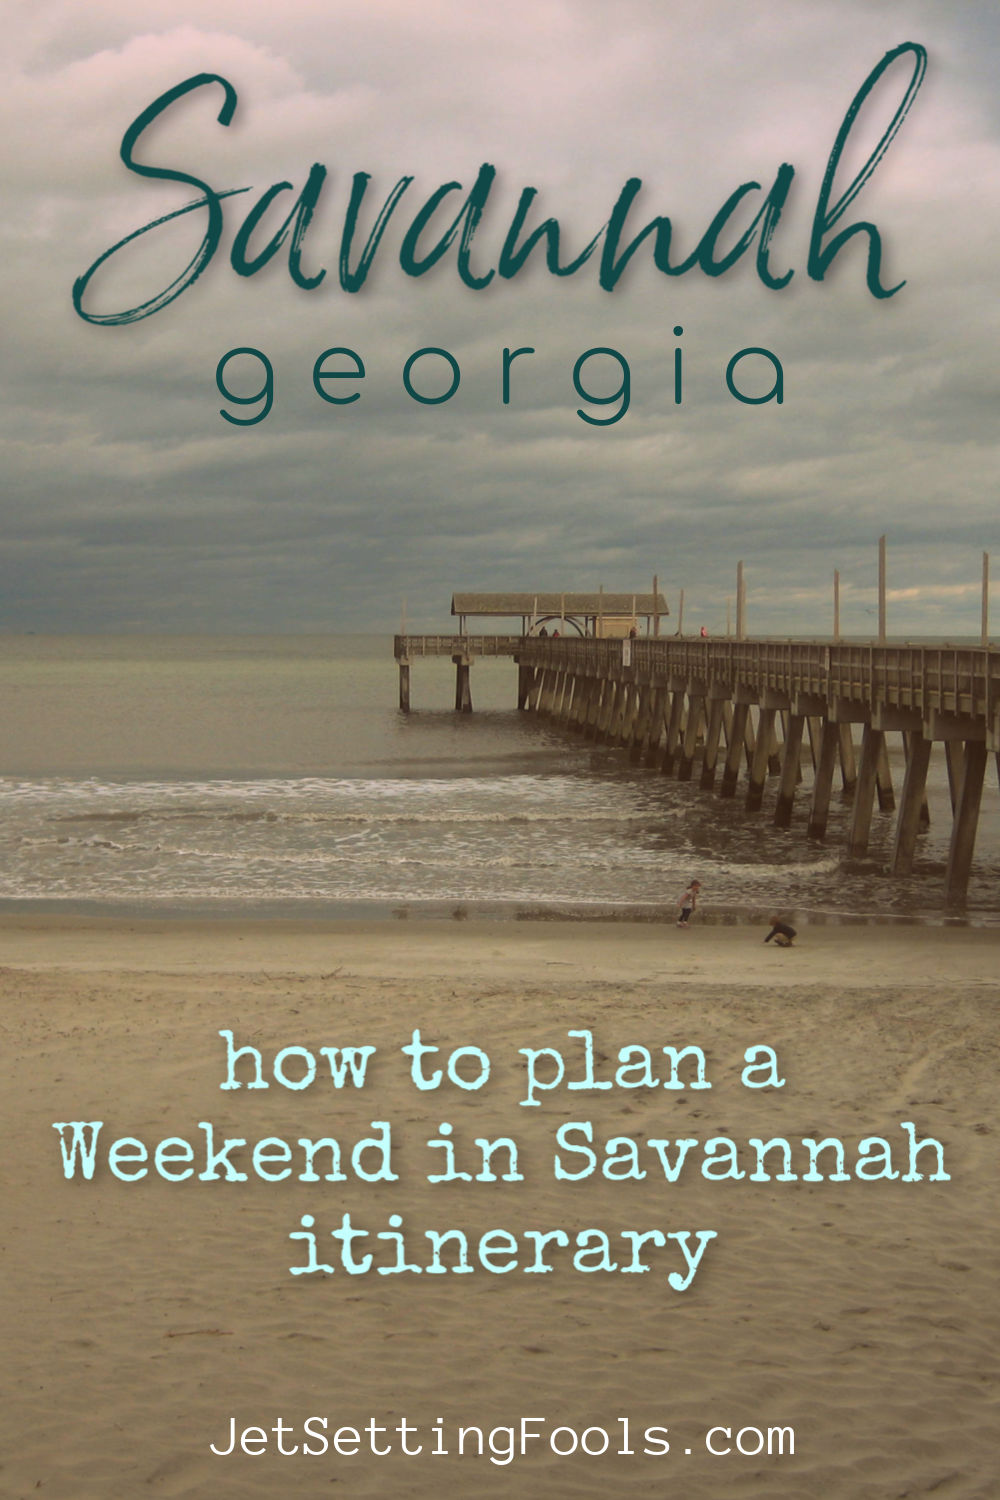 Weekend in Savannah Georgia by JetSettingFools.com